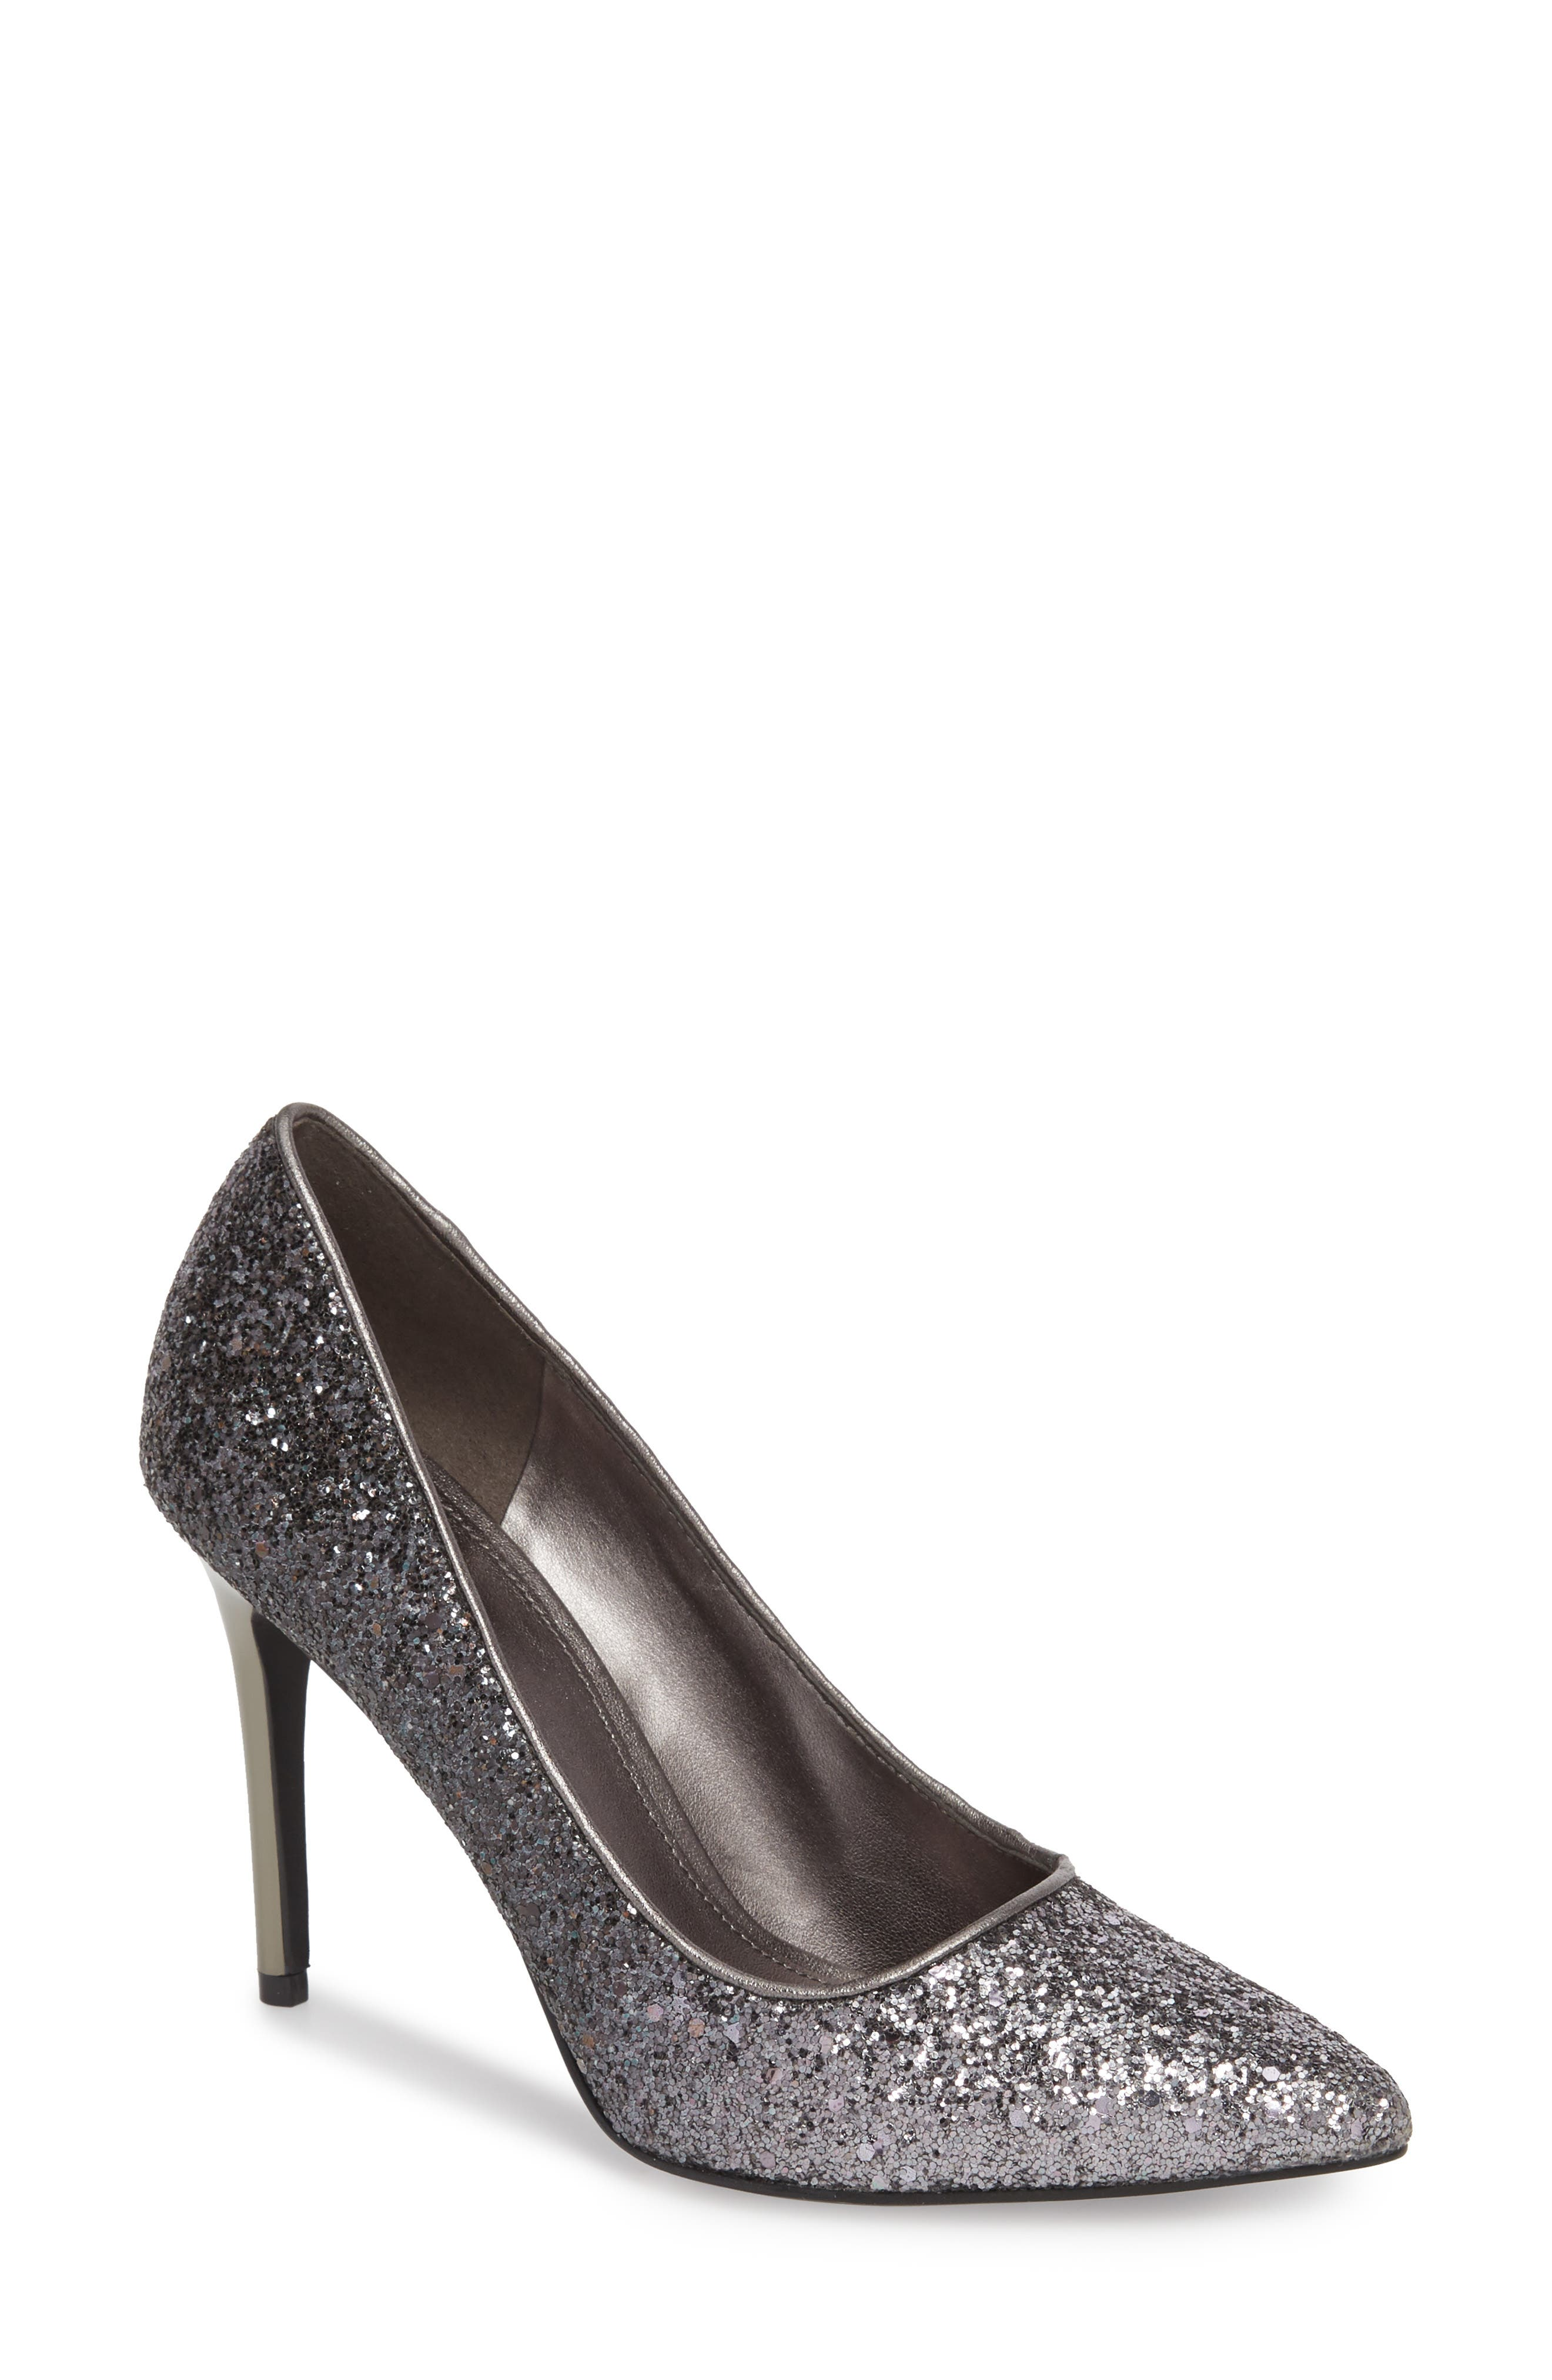 Claire Pointy Toe Pump,                         Main,                         color, GUNMETAL GLITTER FABRIC